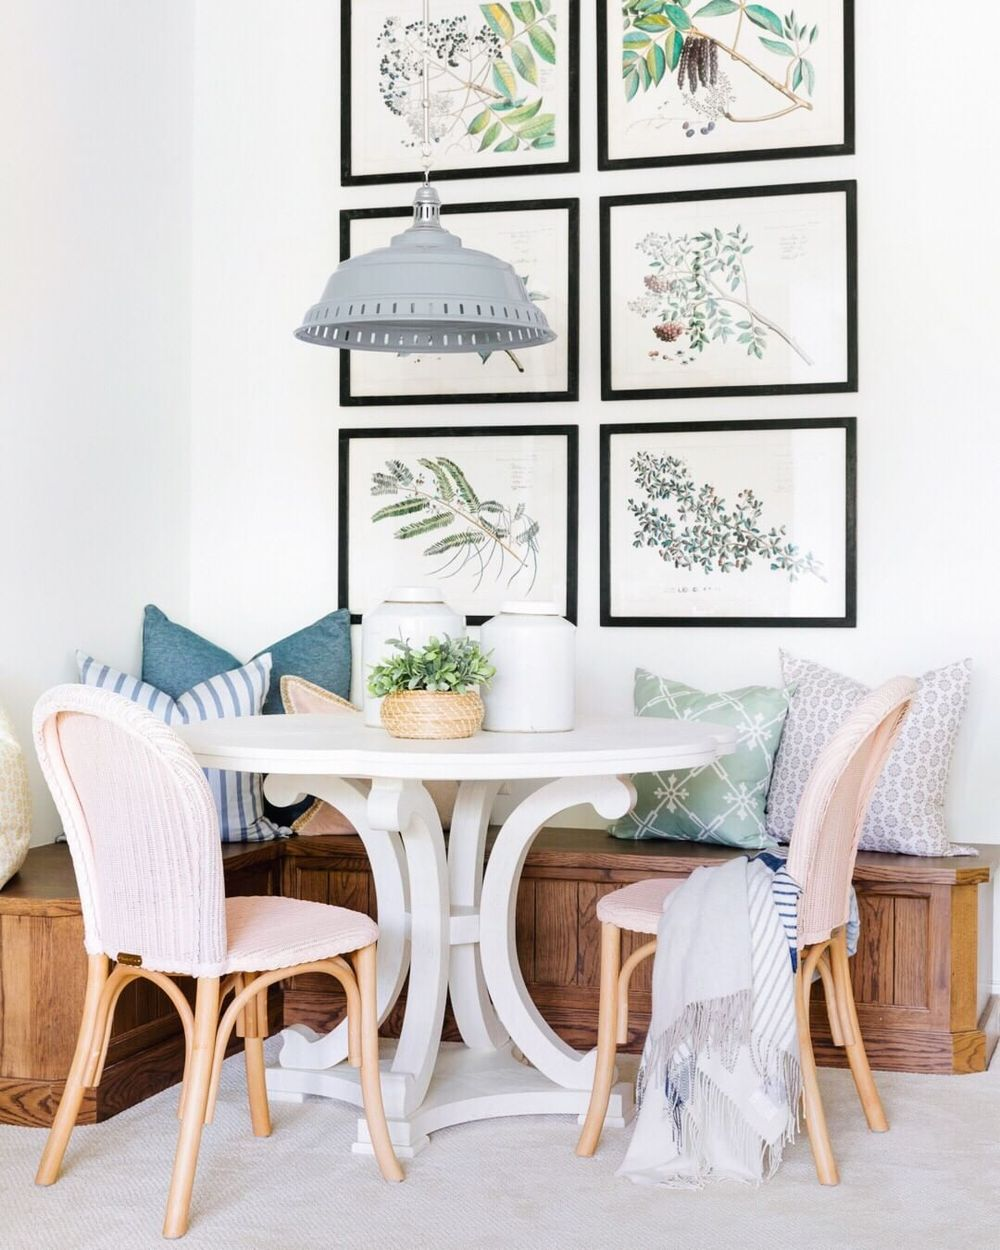 25 Breakfast Nook Decor Ideas